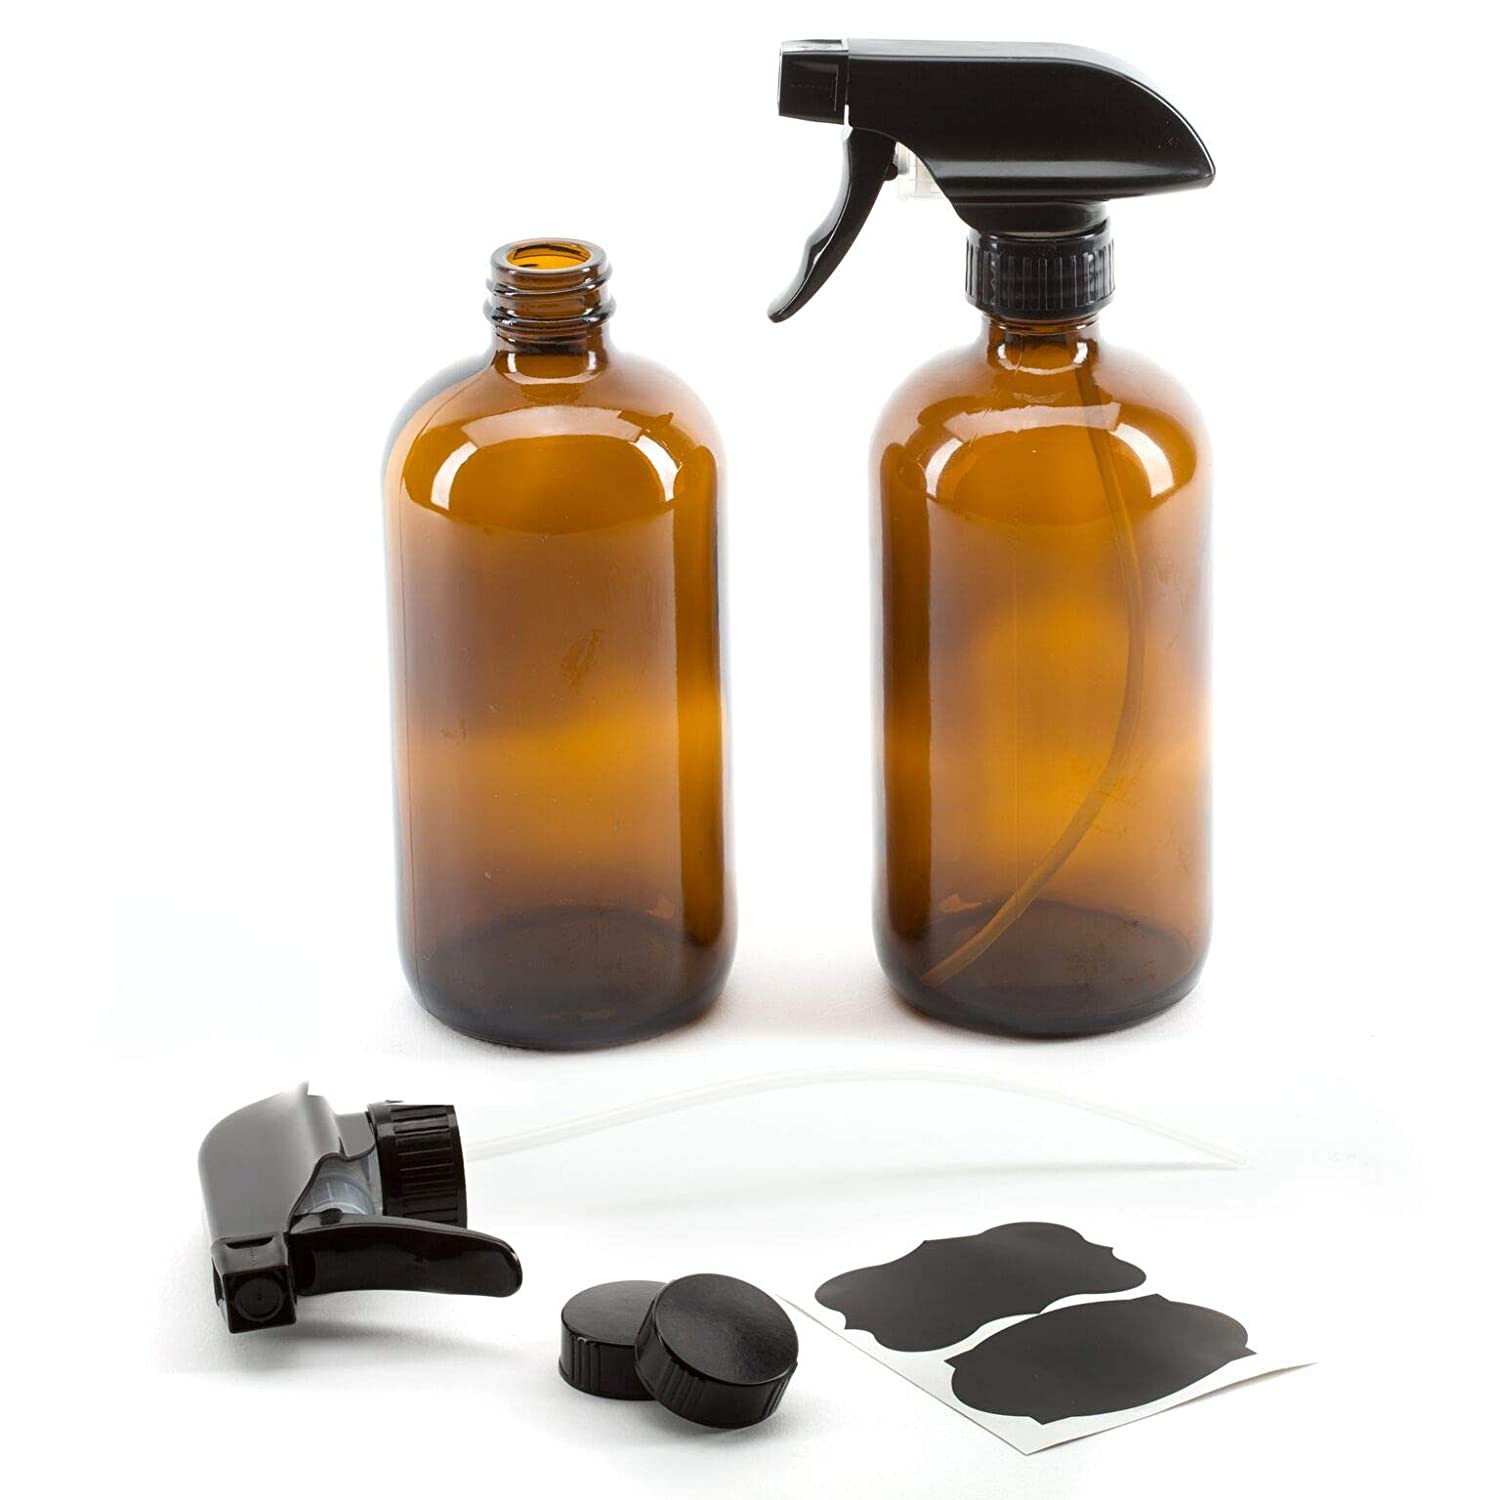 a44c05c730cc 16oz Empty Amber Glass Spray Bottles with Poly Cone Caps & Labels (2 Pack)  - Refillable Container for Essential Oils, Cleaning Products, or ...